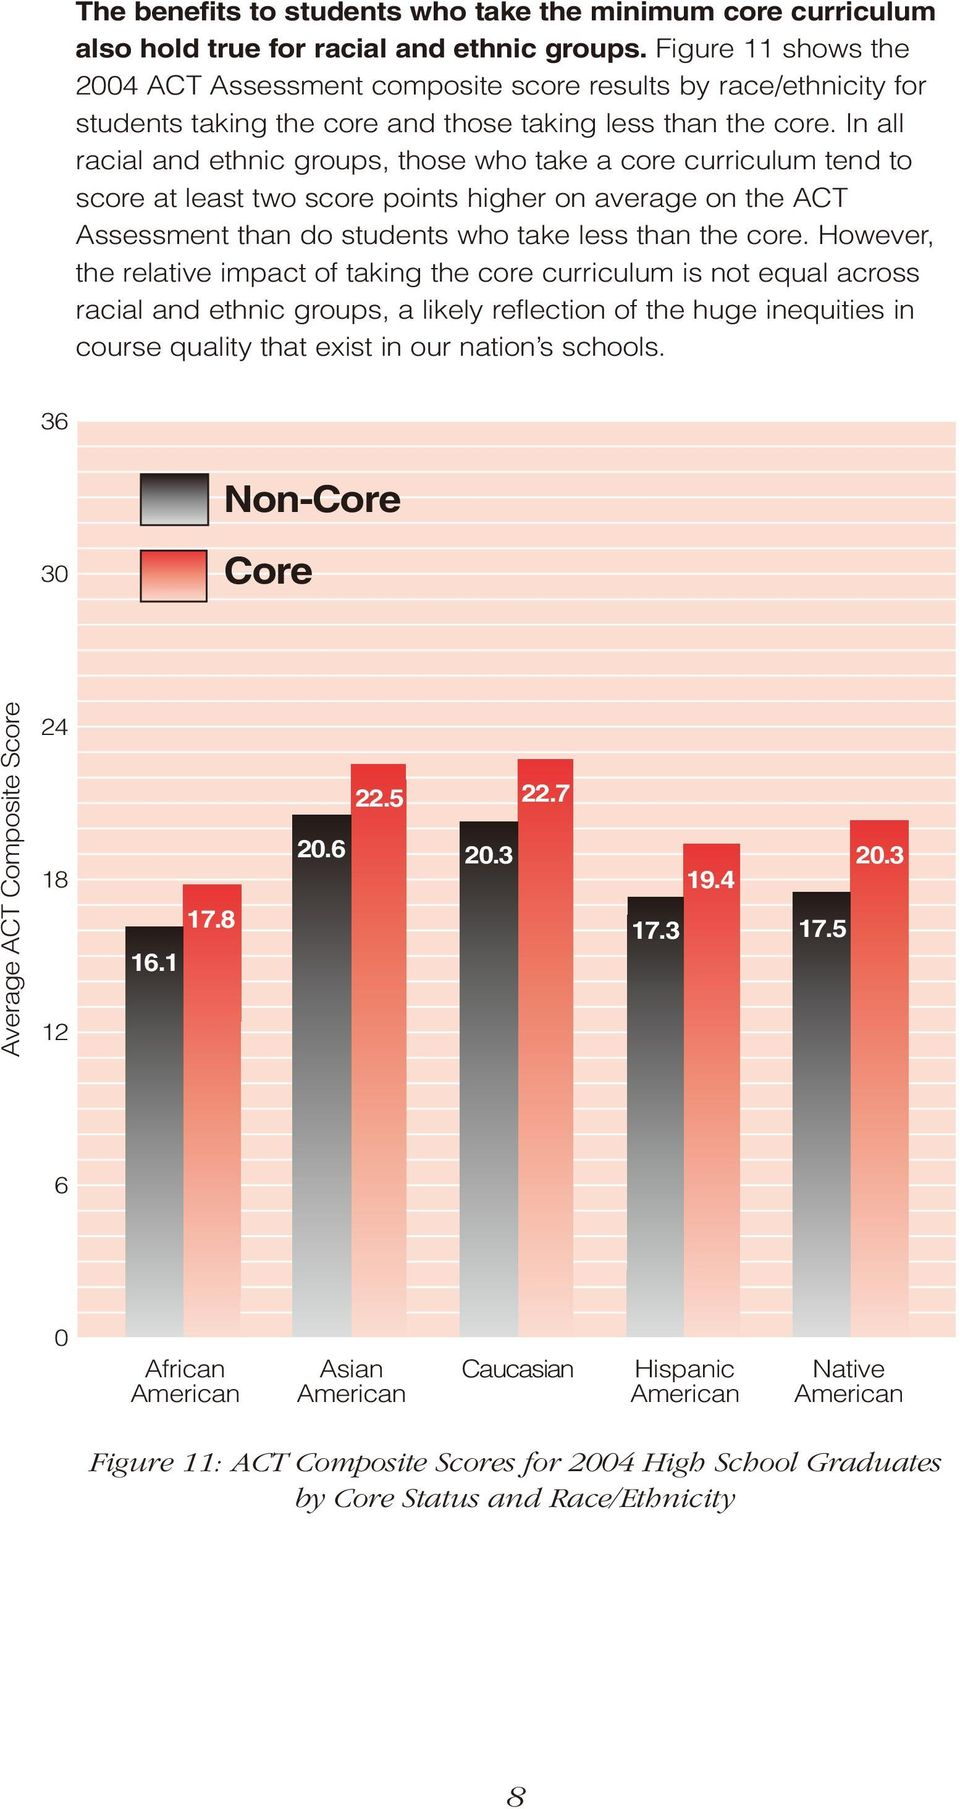 In all racial and ethnic groups, those who take a core curriculum tend to score at least two score points higher on average on the ACT Assessment than do students who take less than the core.